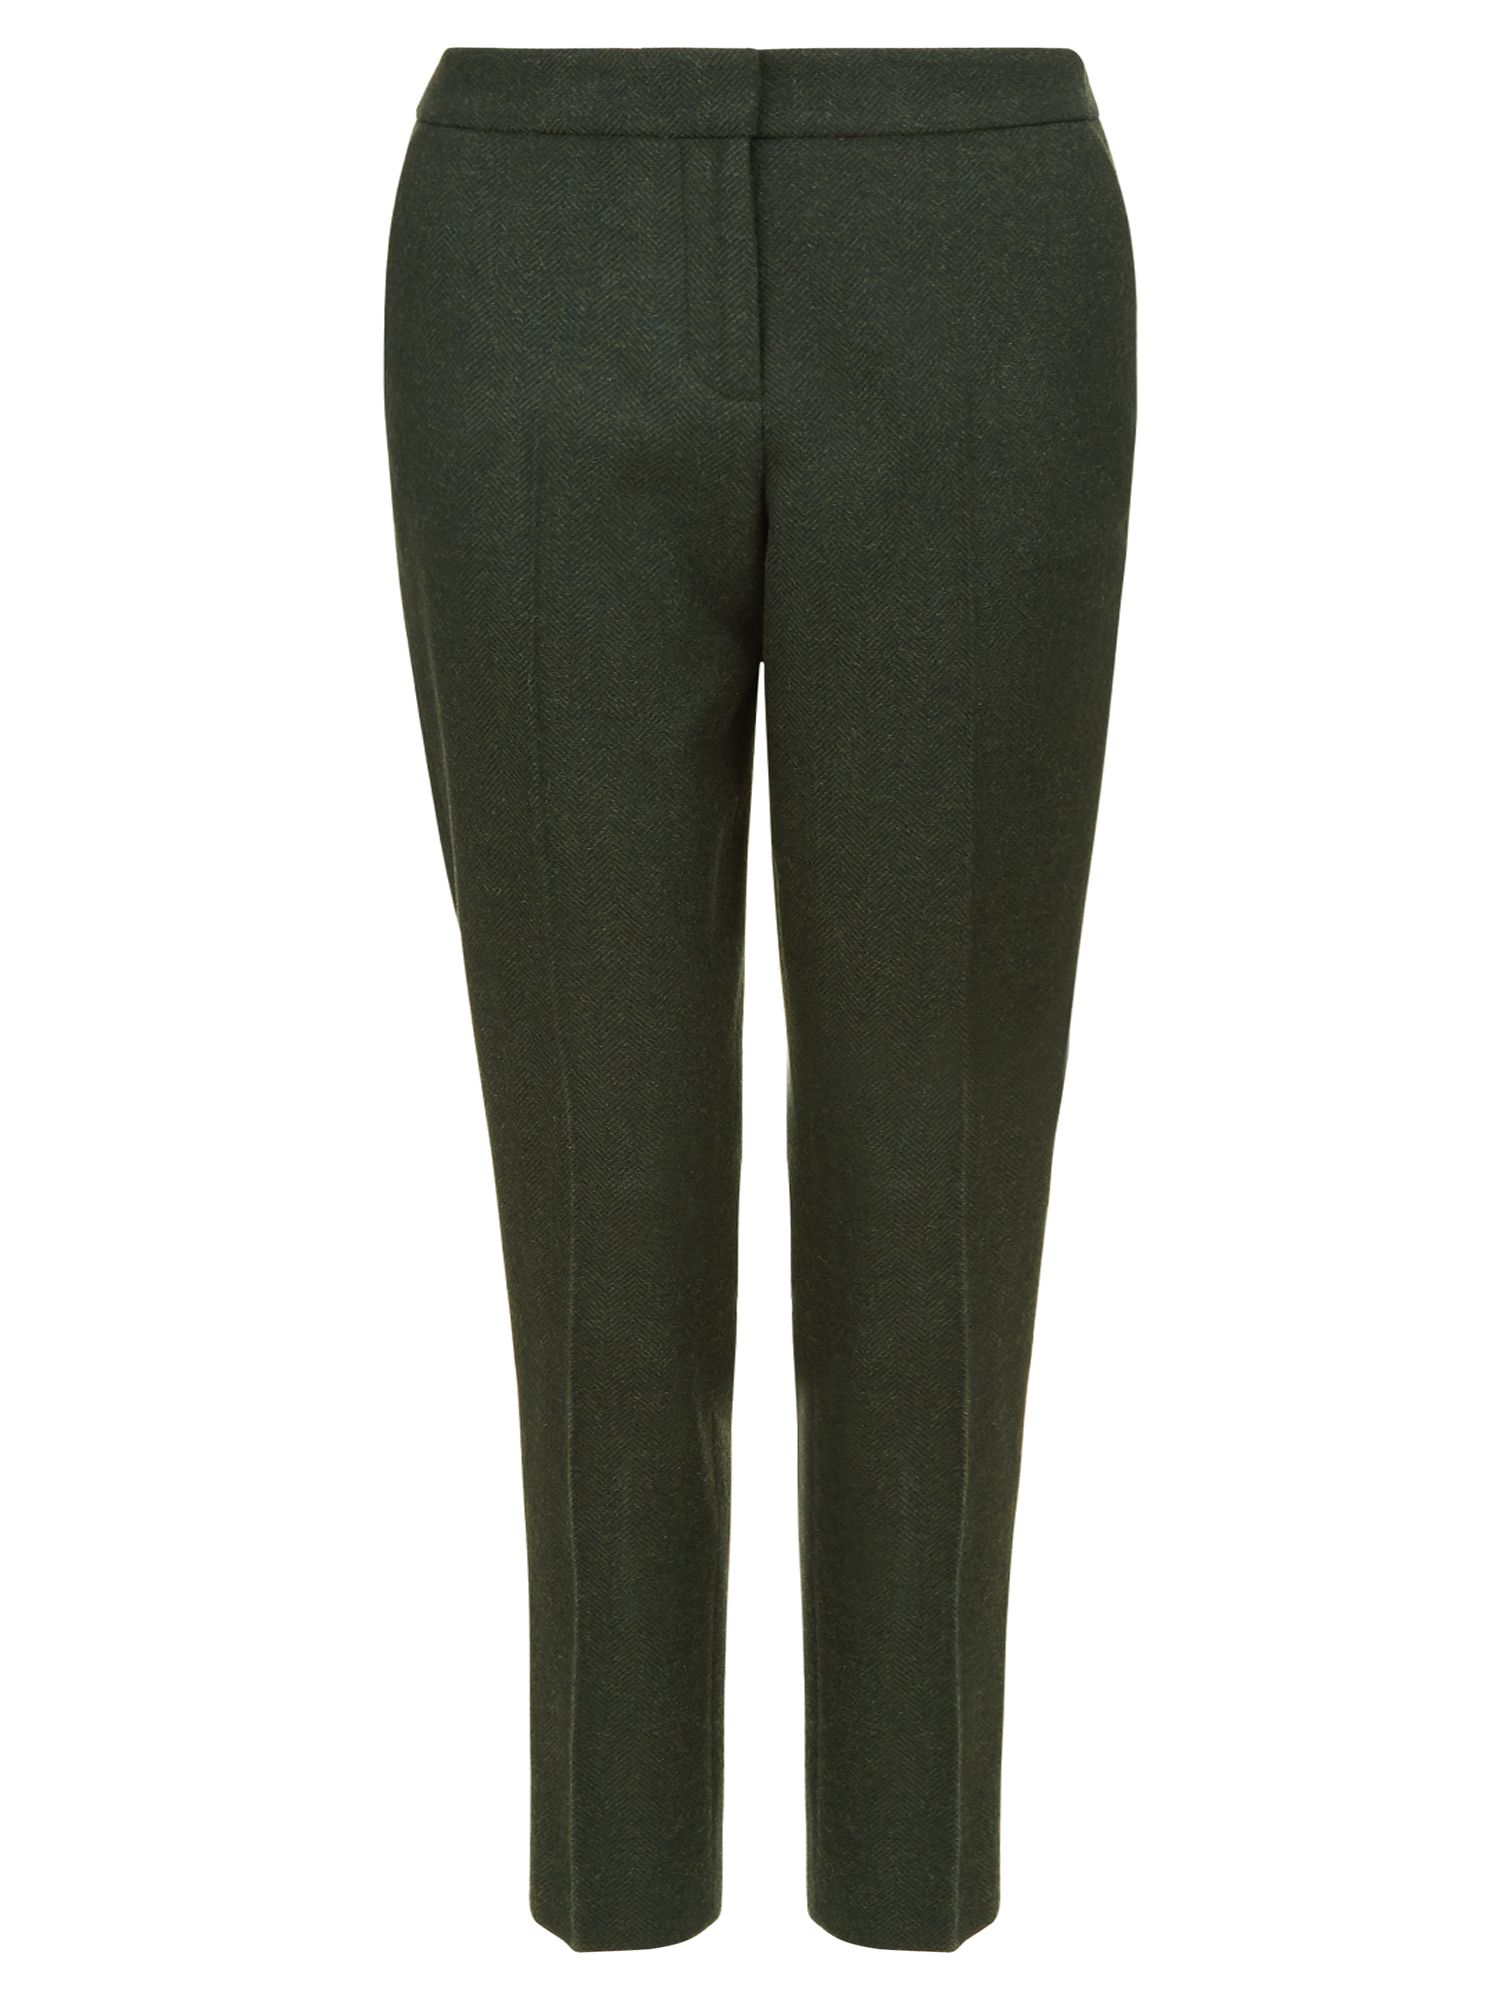 Hobbs Yew Trouser, Multi-Coloured